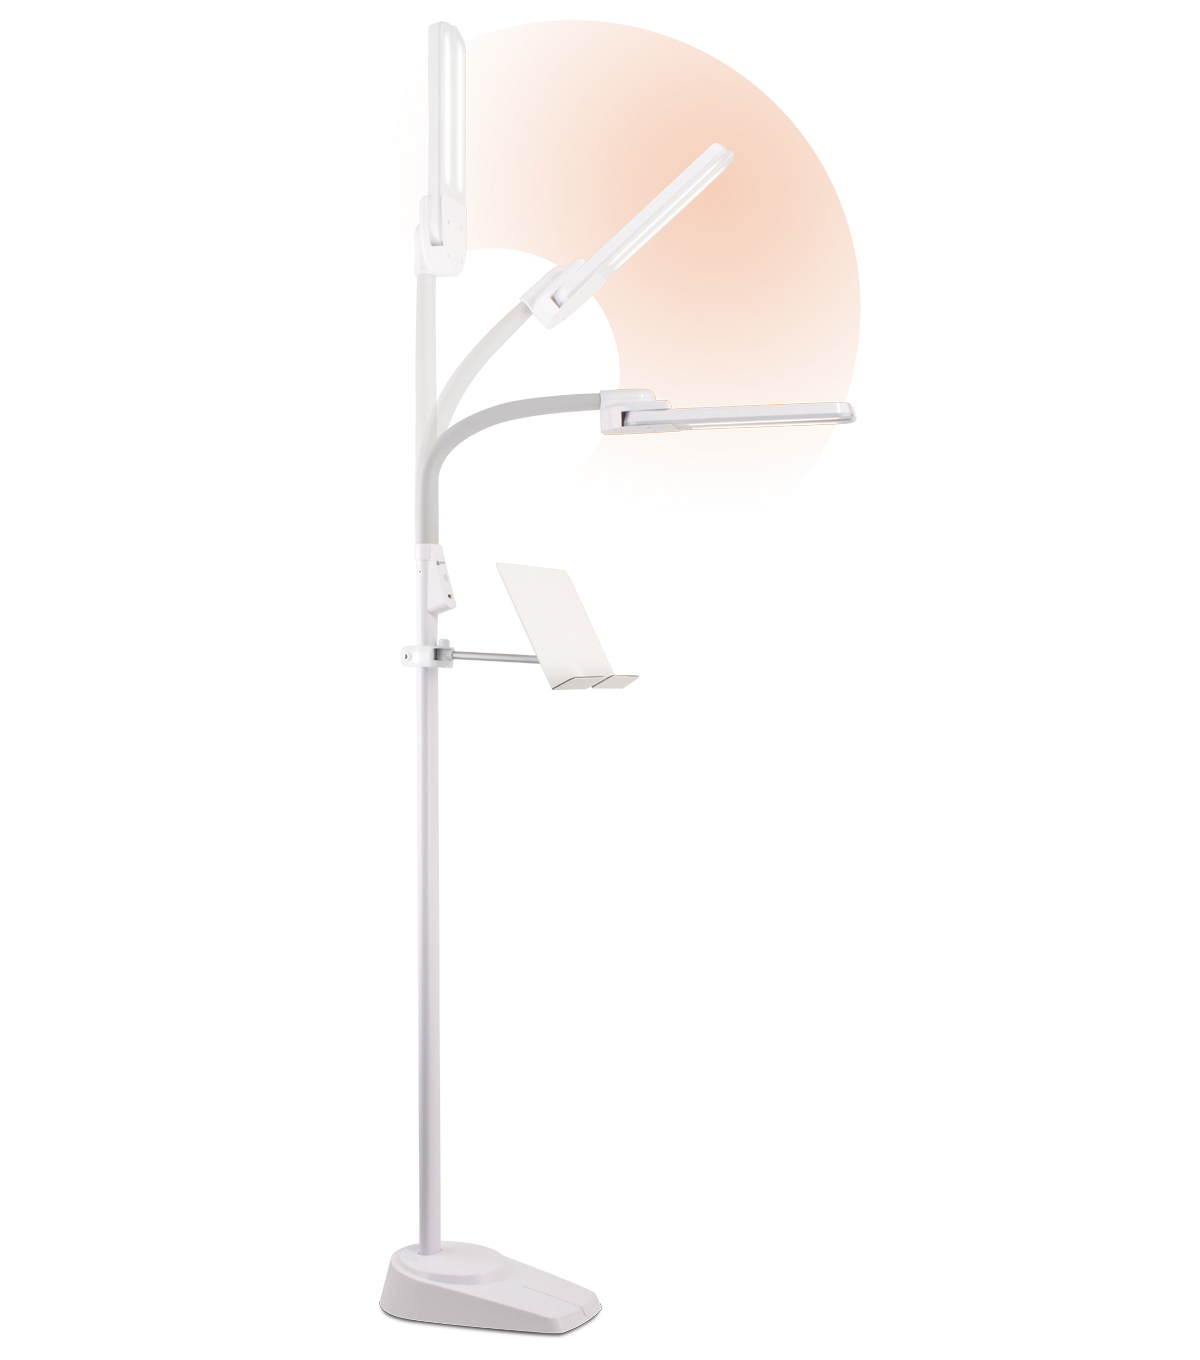 OttLite Dual Shade LED Floor Lamp with USB Charging Station-White